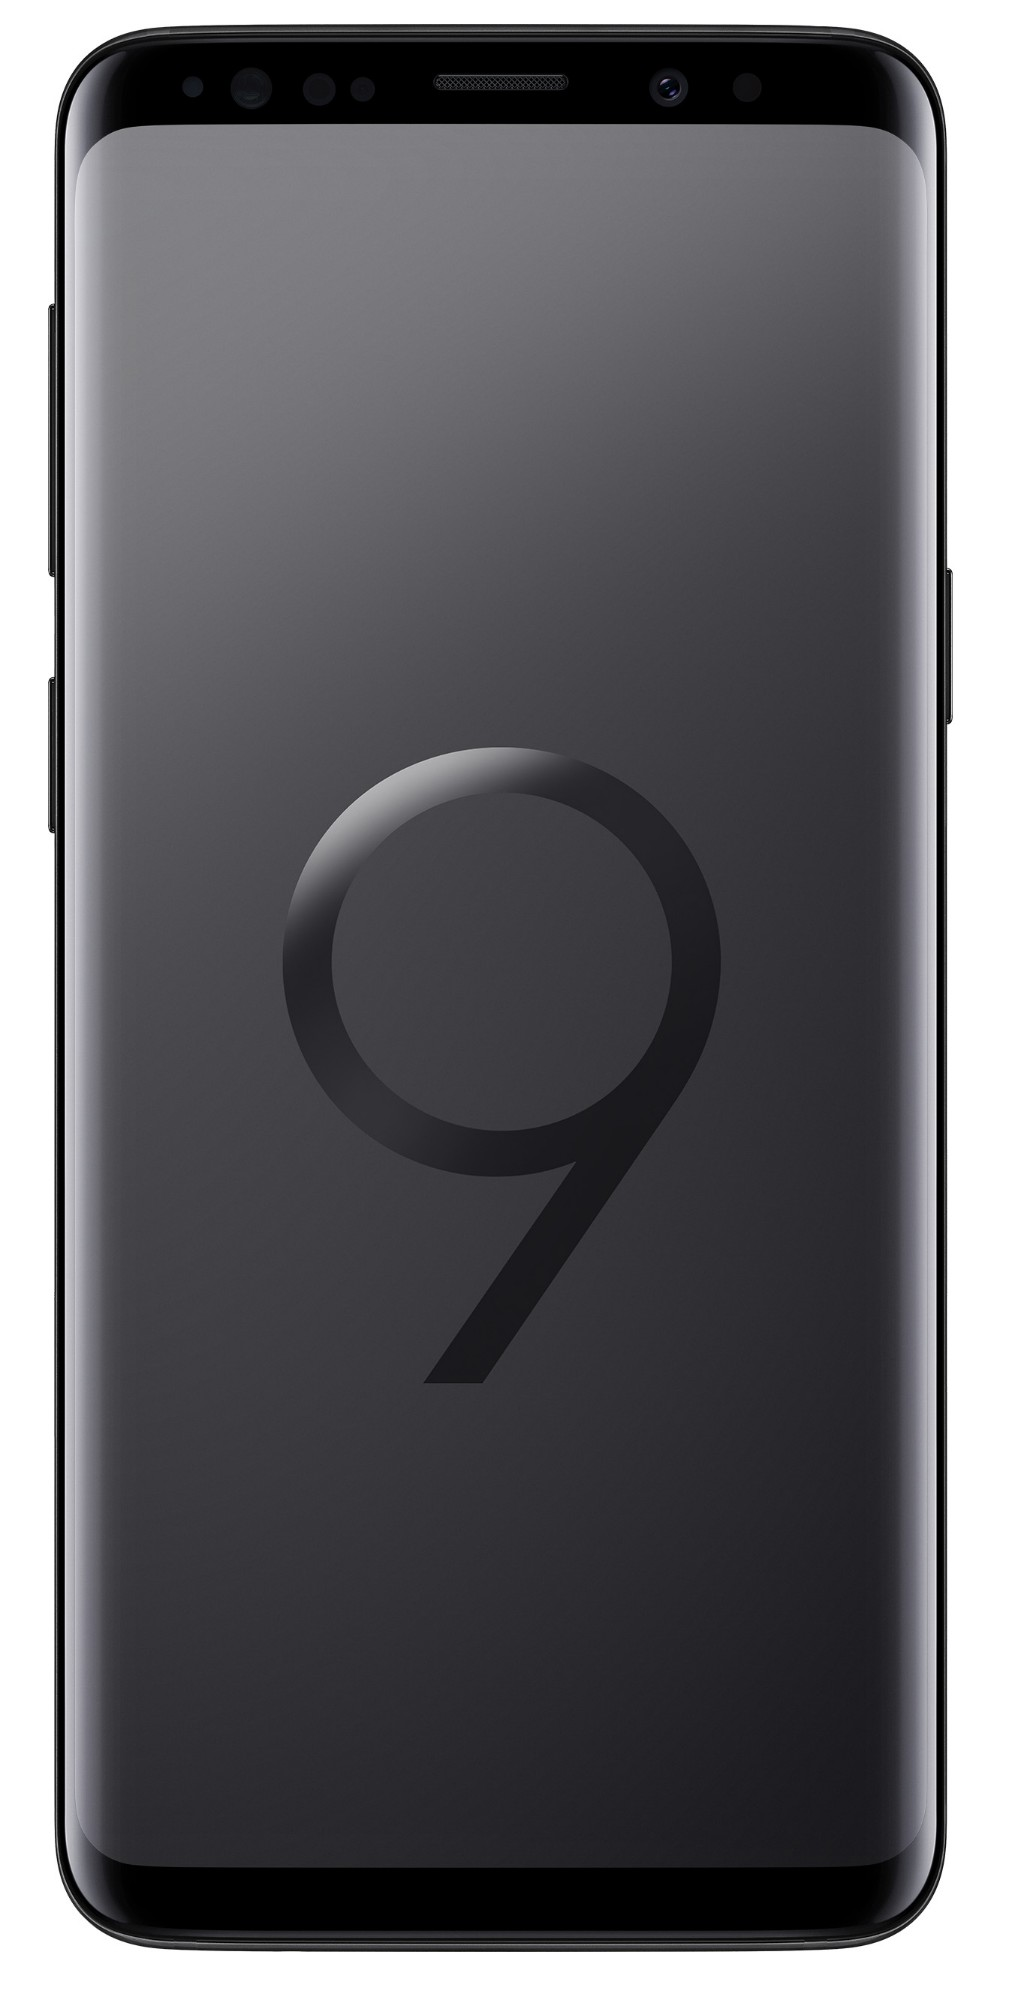 "Samsung Galaxy S9 SM-960F 14.7 cm (5.8"") 4 GB 64 GB Single SIM 4G Black 3000 mAh"